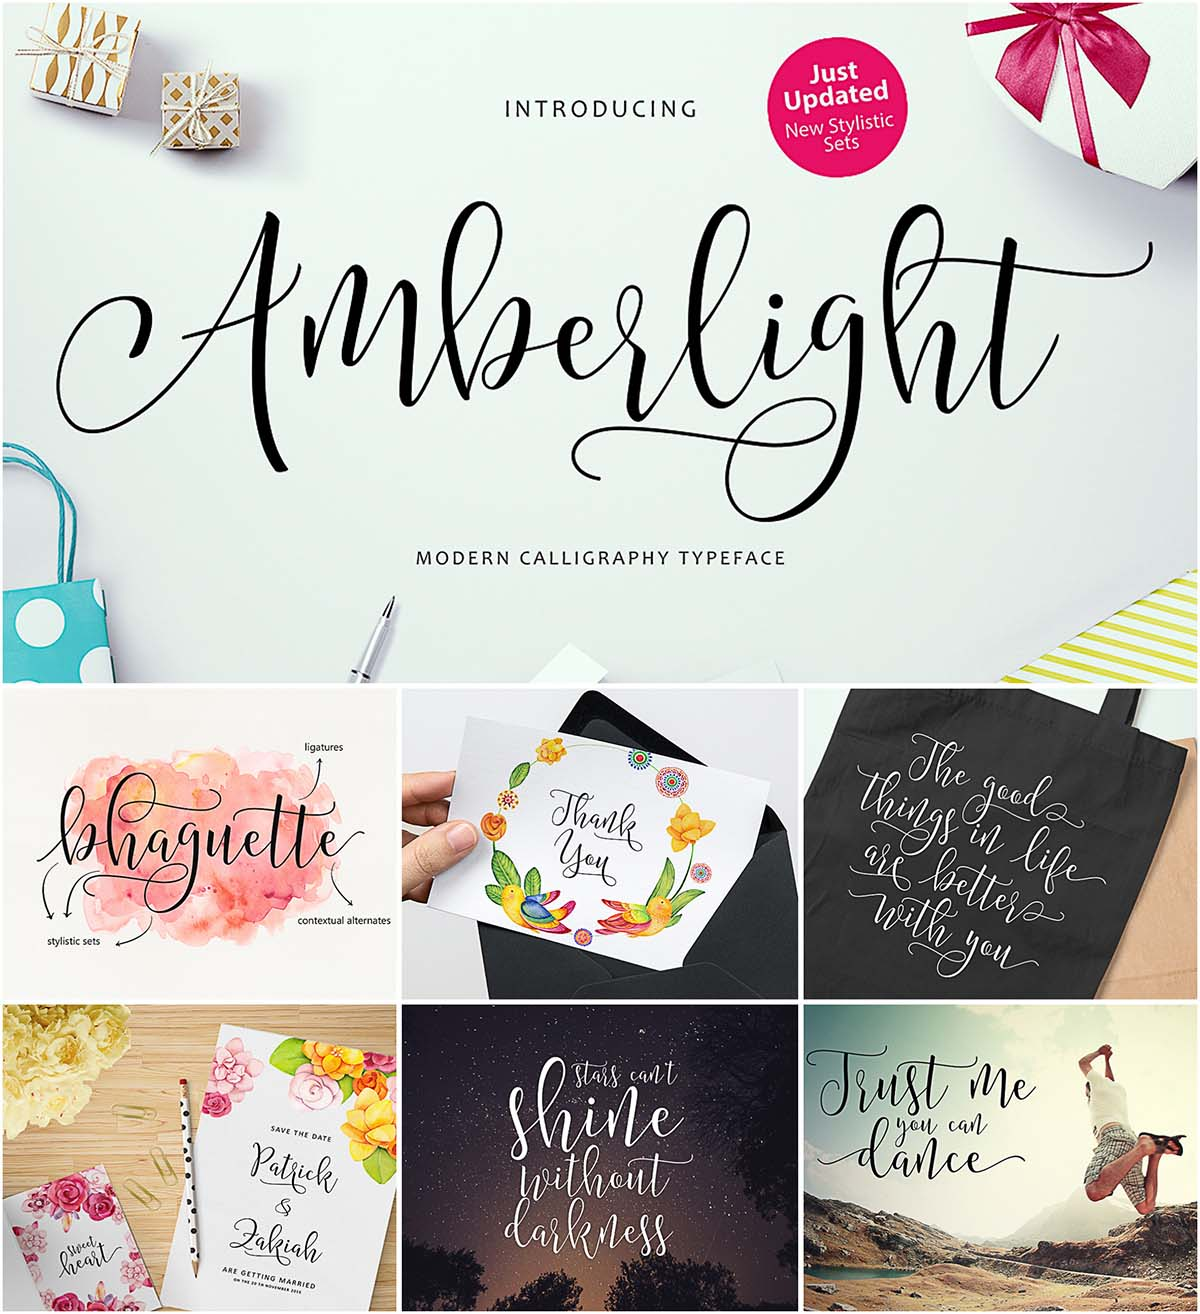 Lucida Calligraphy Font Free Download Lucida Calligraphy Font Free Download